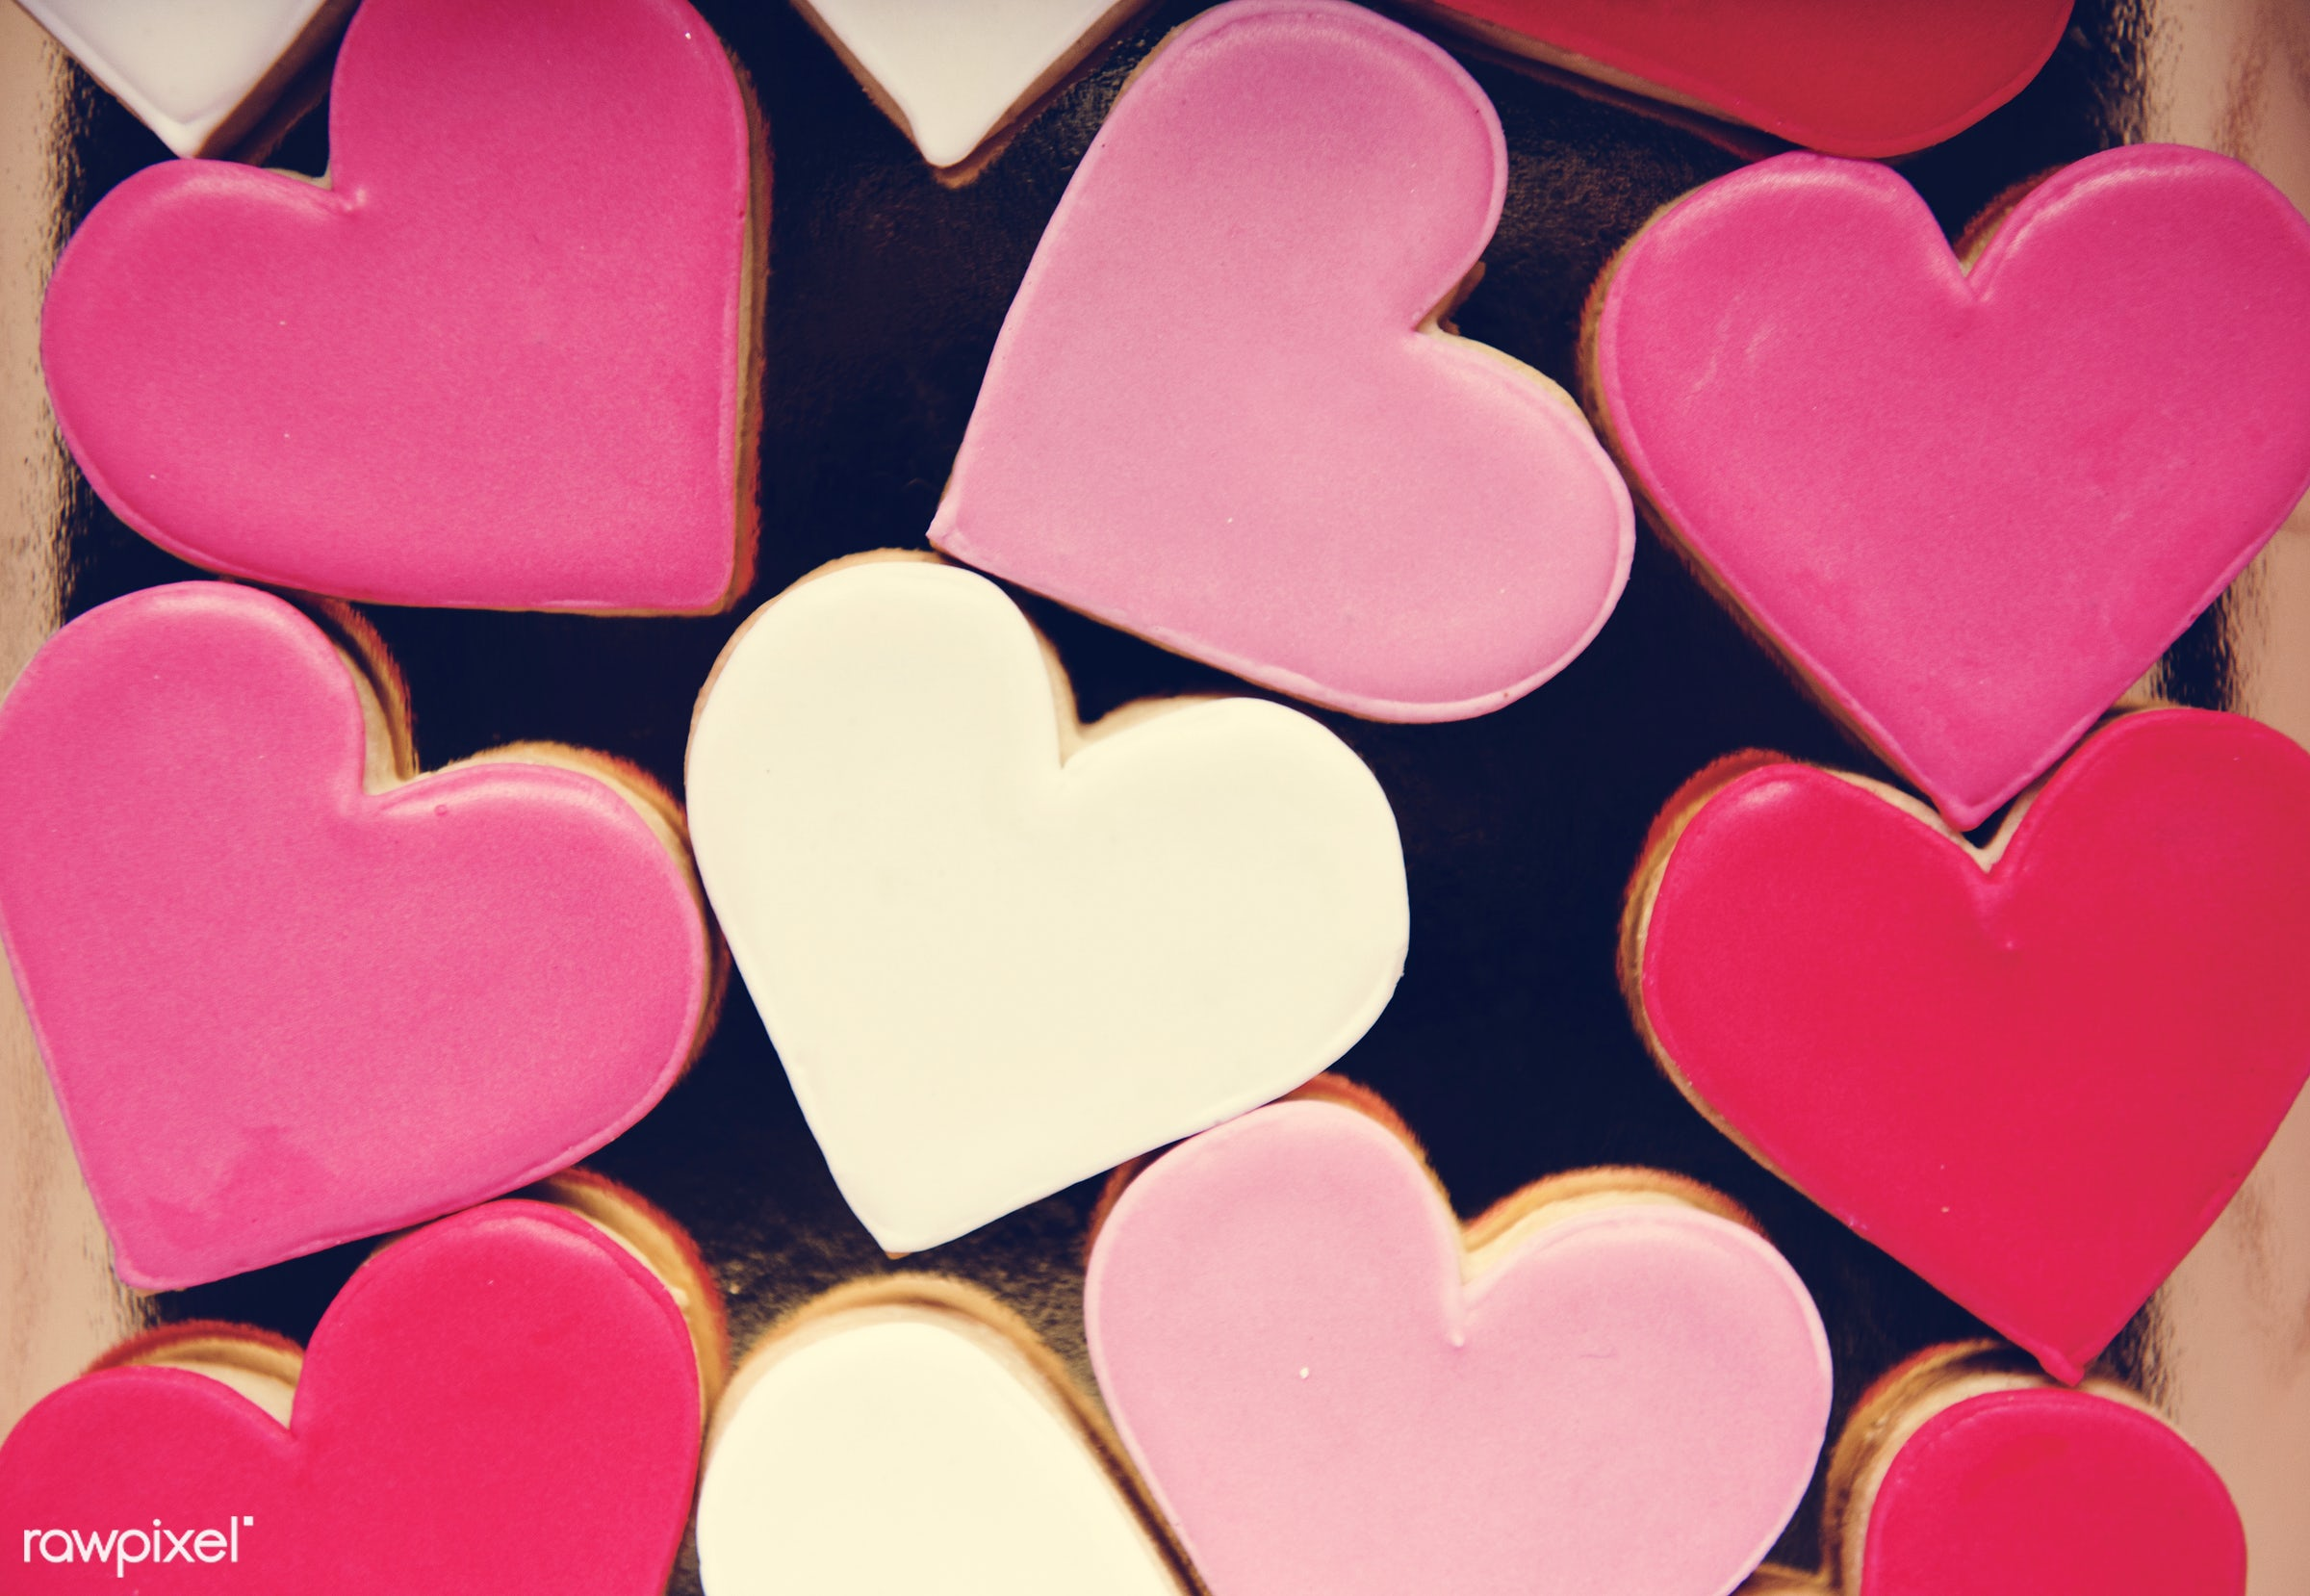 expression, smitten, together, with you, love, bakery, cherish, family, intimate, pink, affection, heart, yearning, white,...